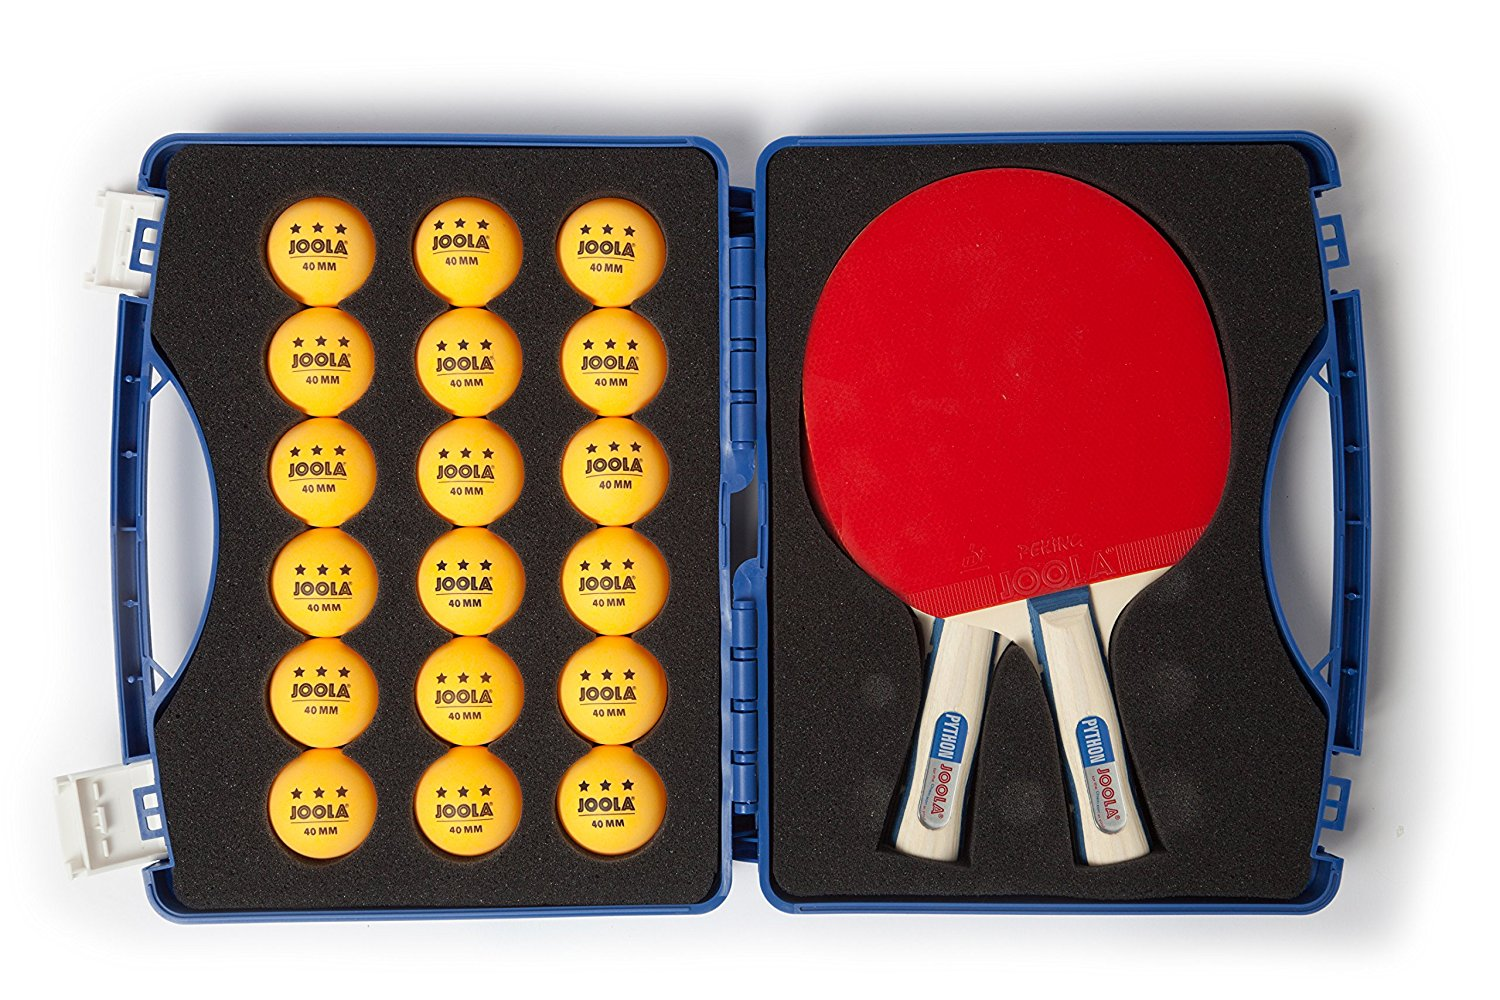 Joola Competition Table Tennis Tour Case (Includes Two Python Rackets and 18 3 Star Balls)